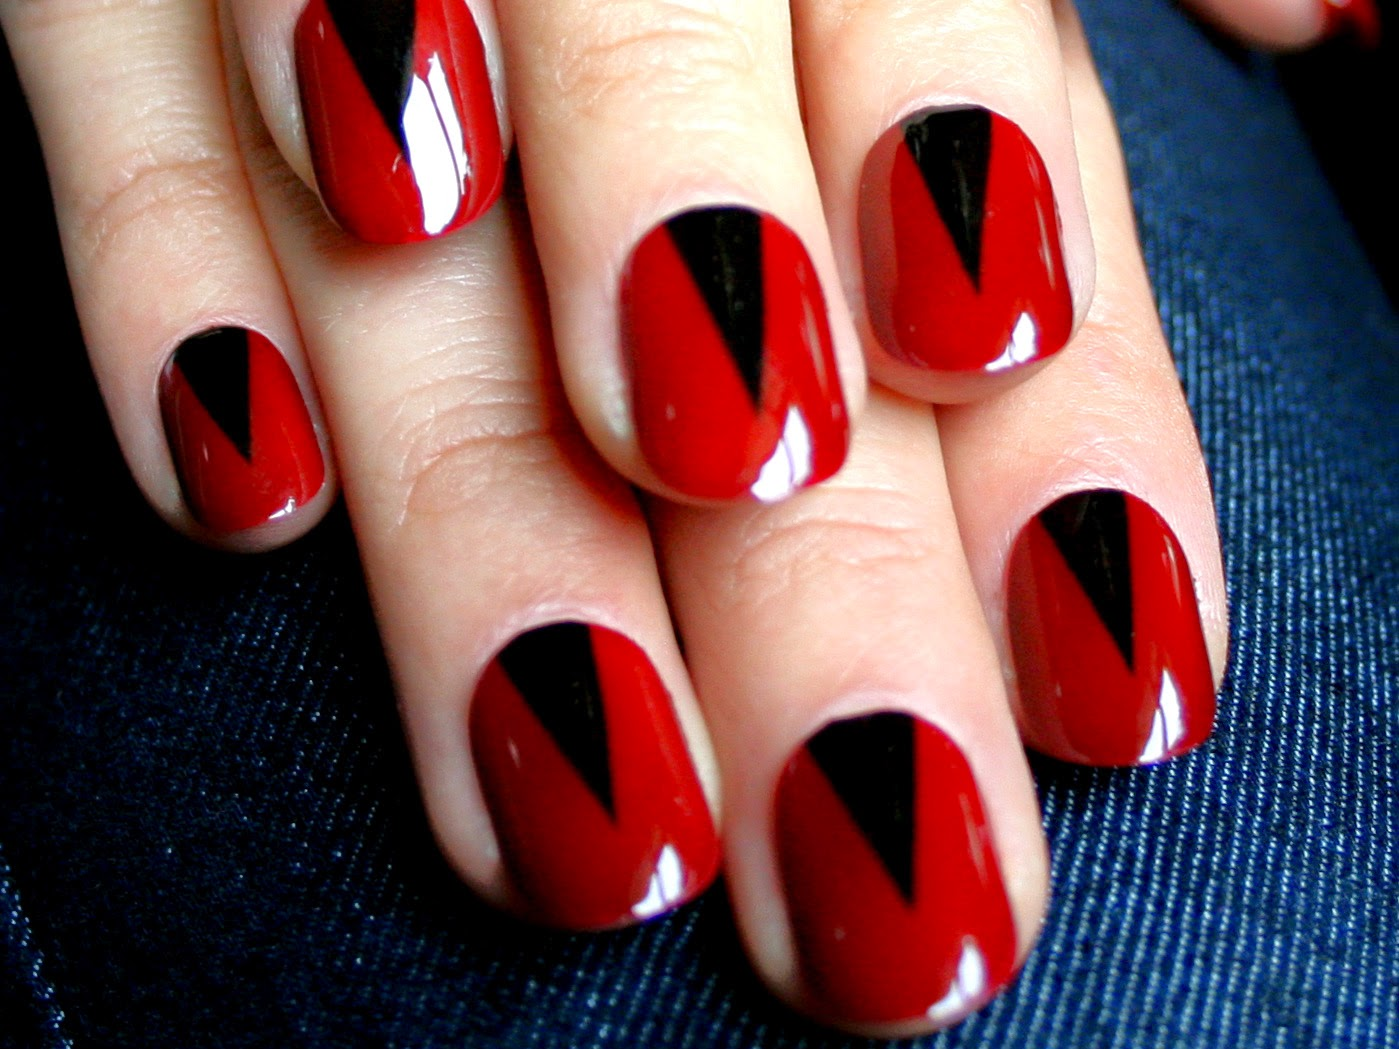 Red Black Nail Polish Designshttp://nails-side.blogspot.com/